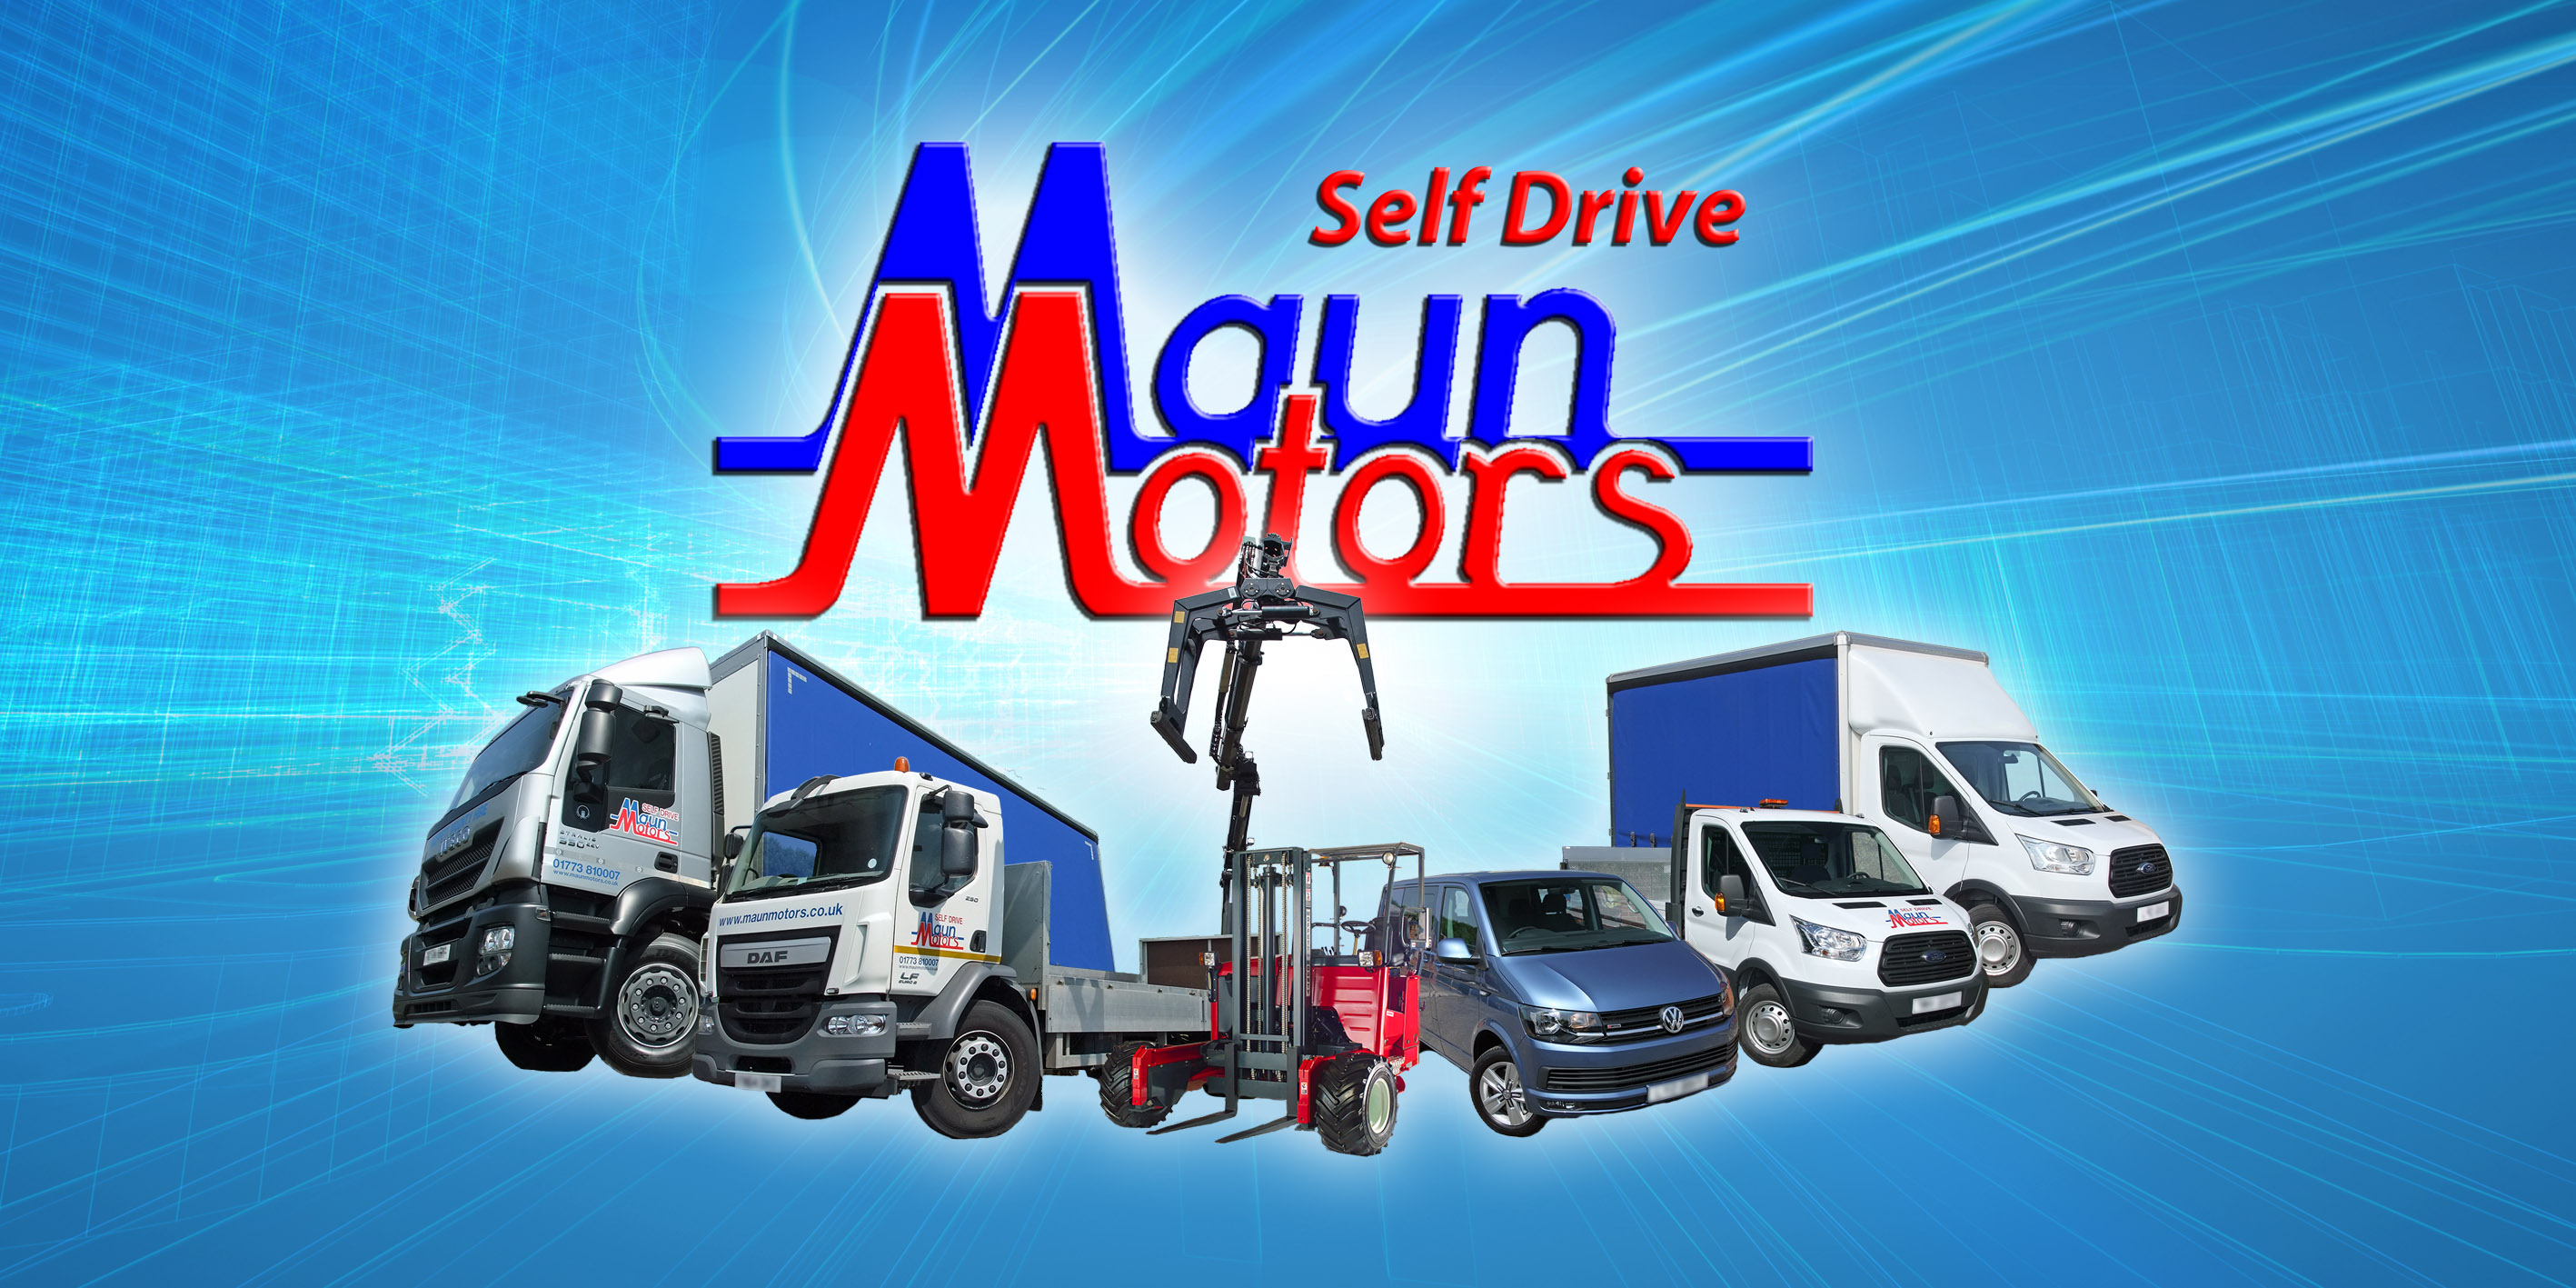 Maun Motors Self Drive - COmmercial Vehicle Hire